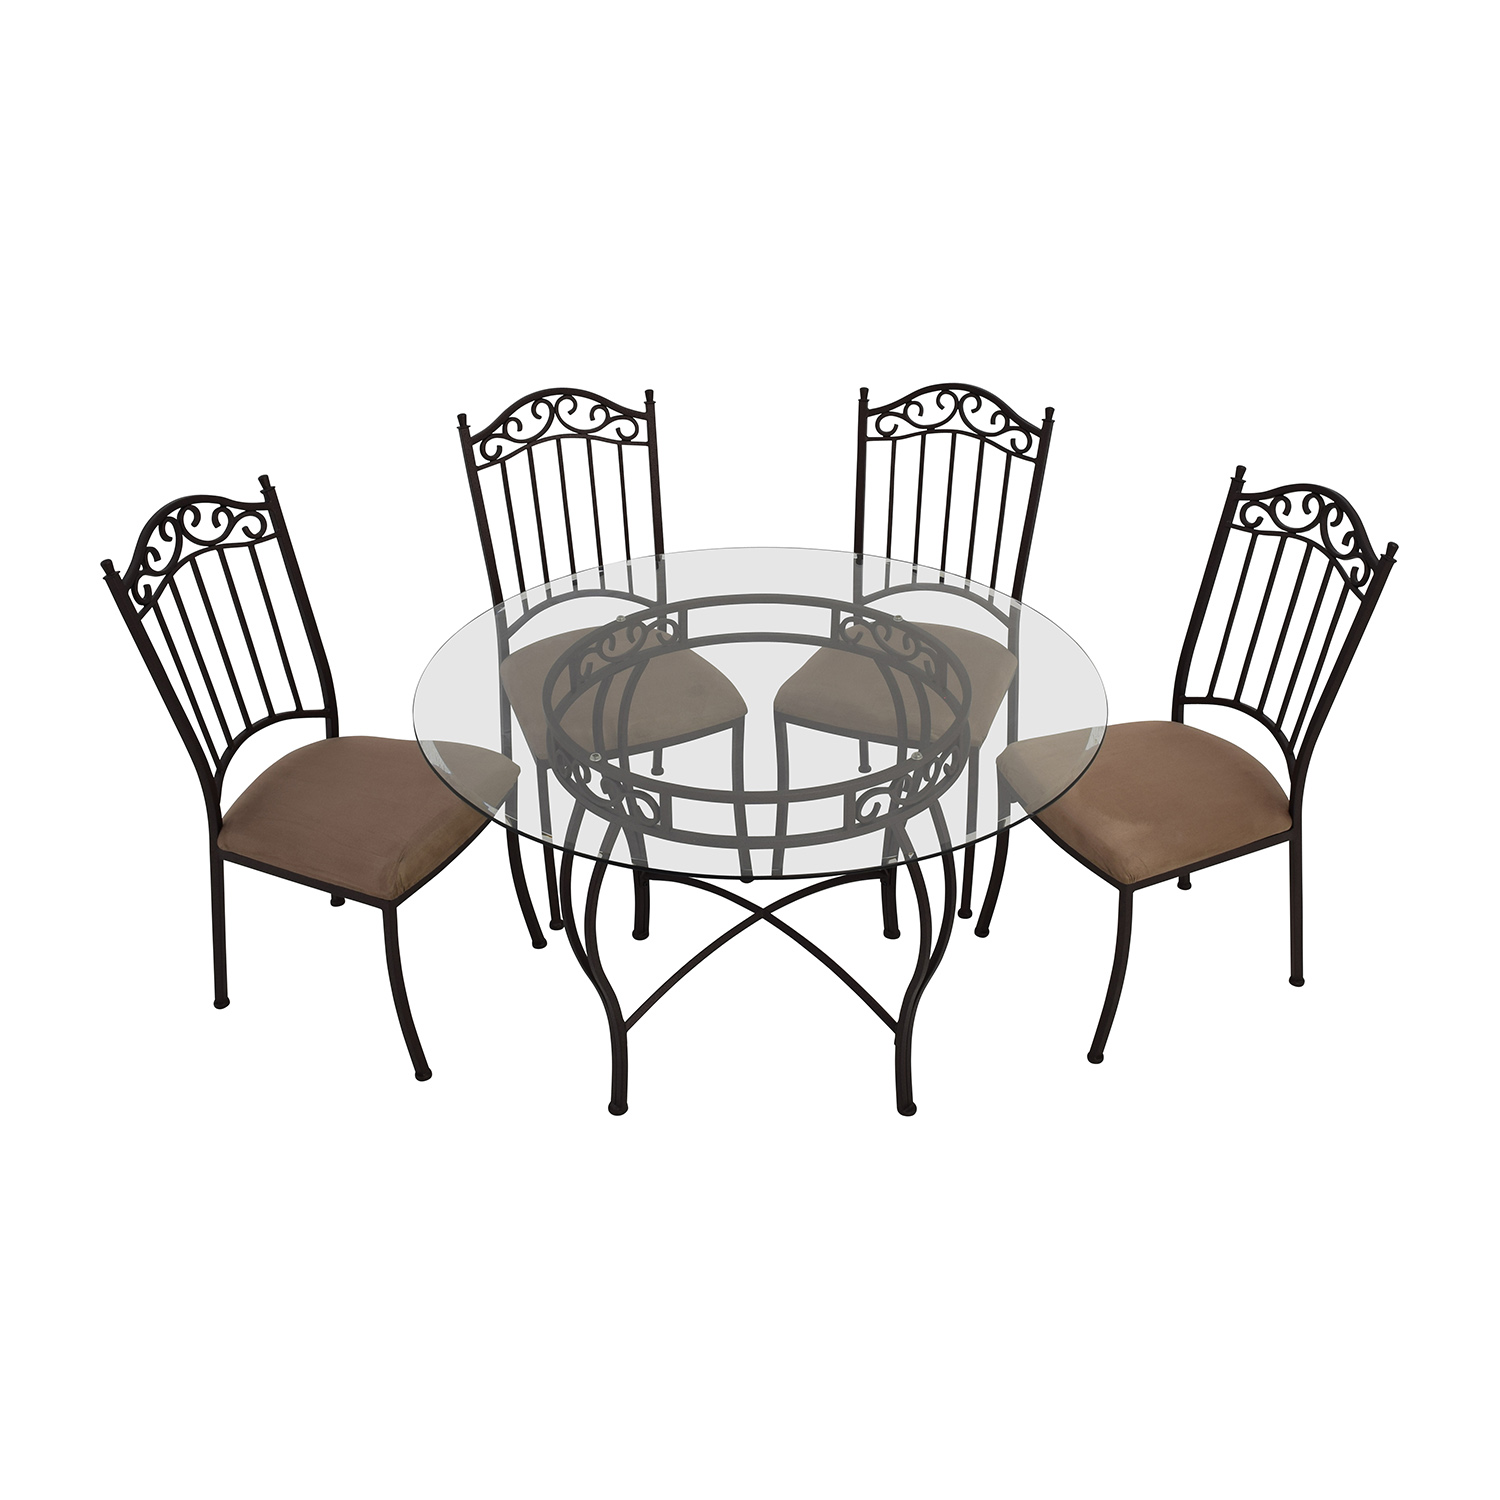 buy Wrought Iron Round Glass Table and Chairs  Dining Sets